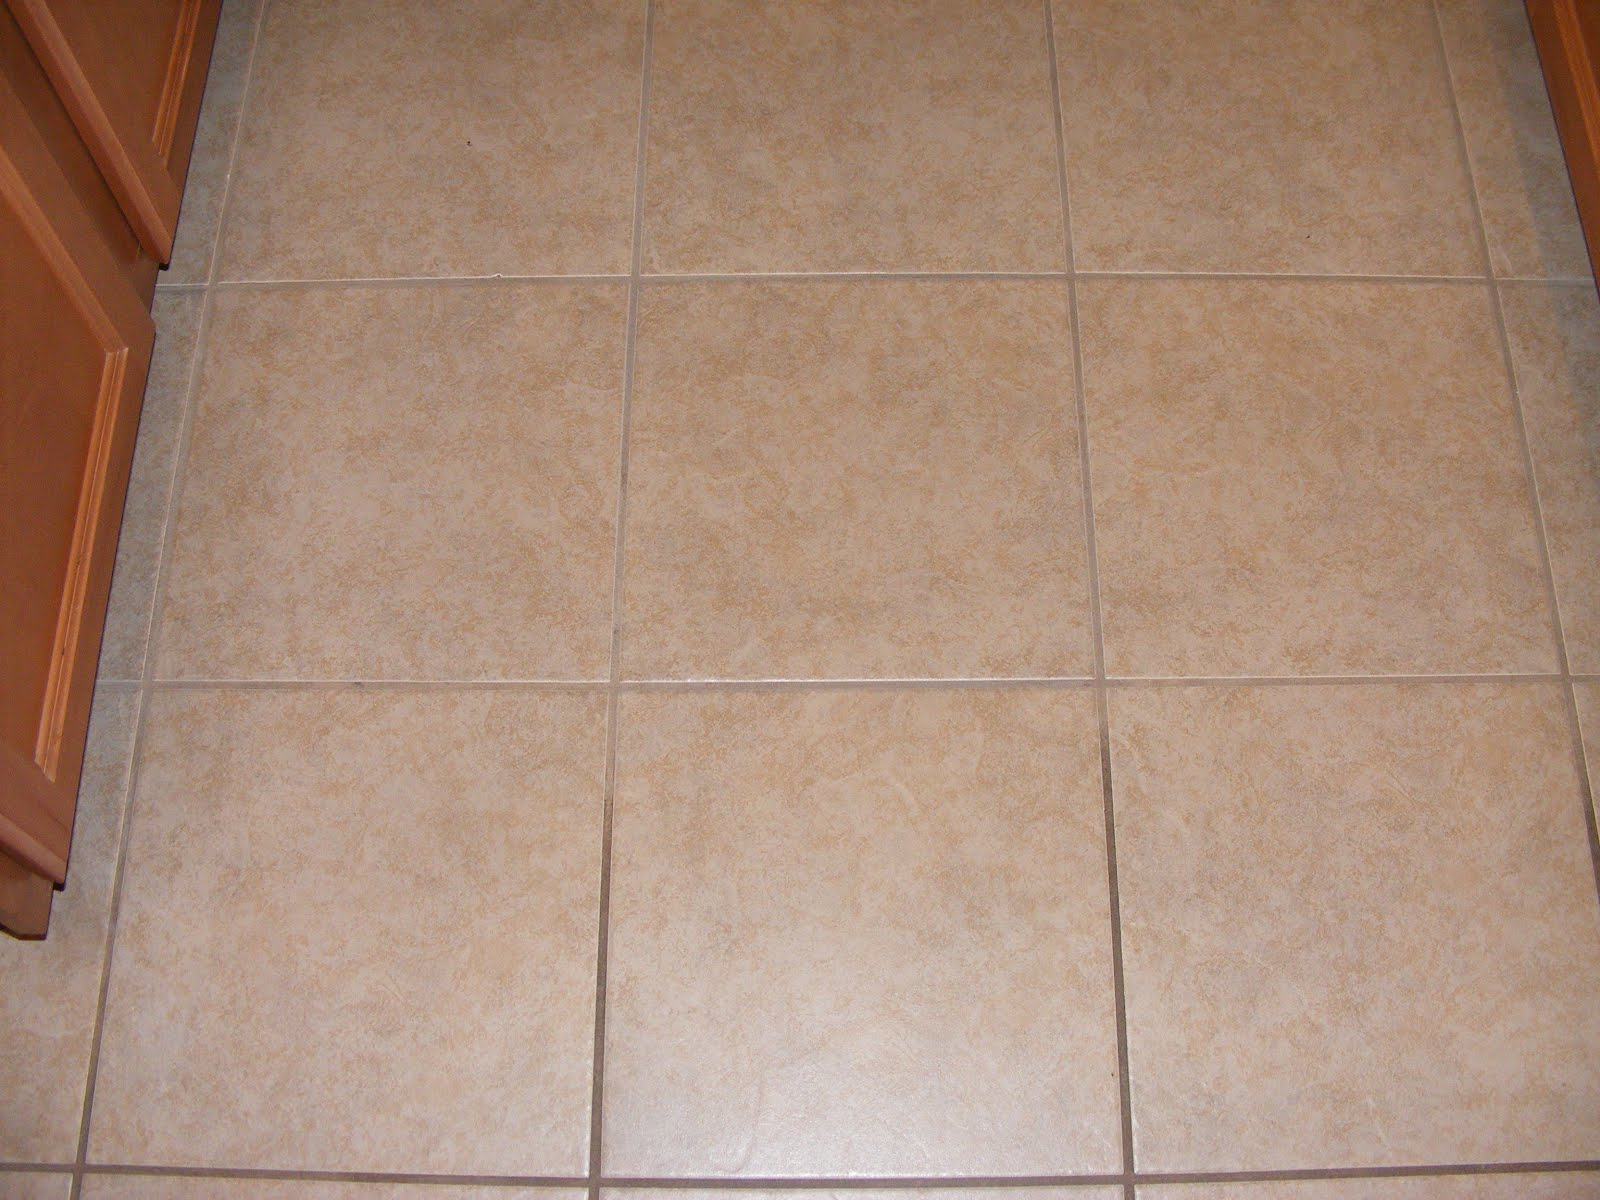 Best Way To Clean Bathroom Amazing Grout Cleaner